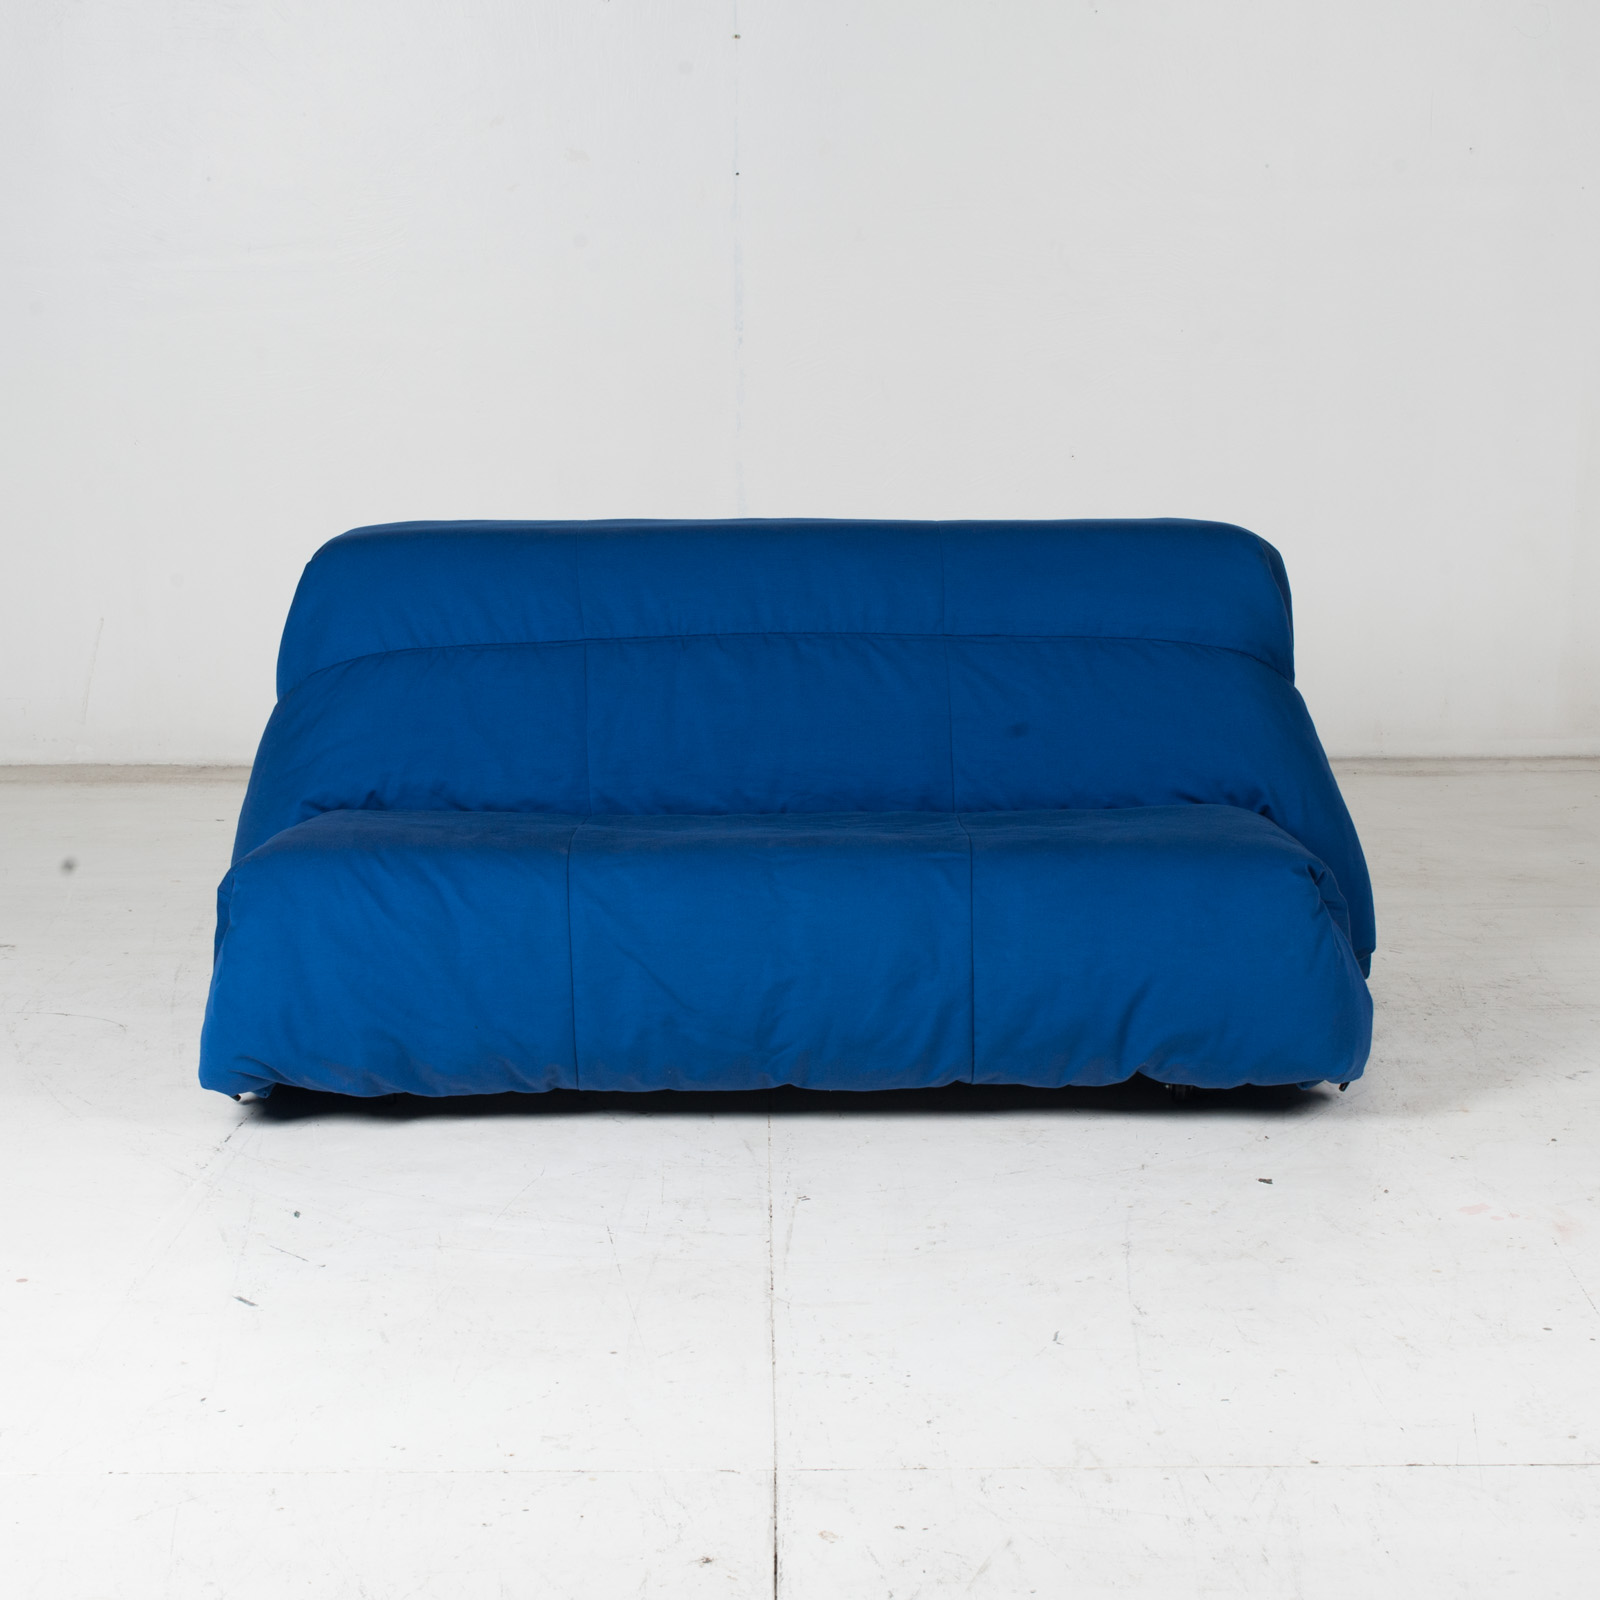 Sofa Bed By Ligne Roset In Blue Upholstery, 1960s, France2